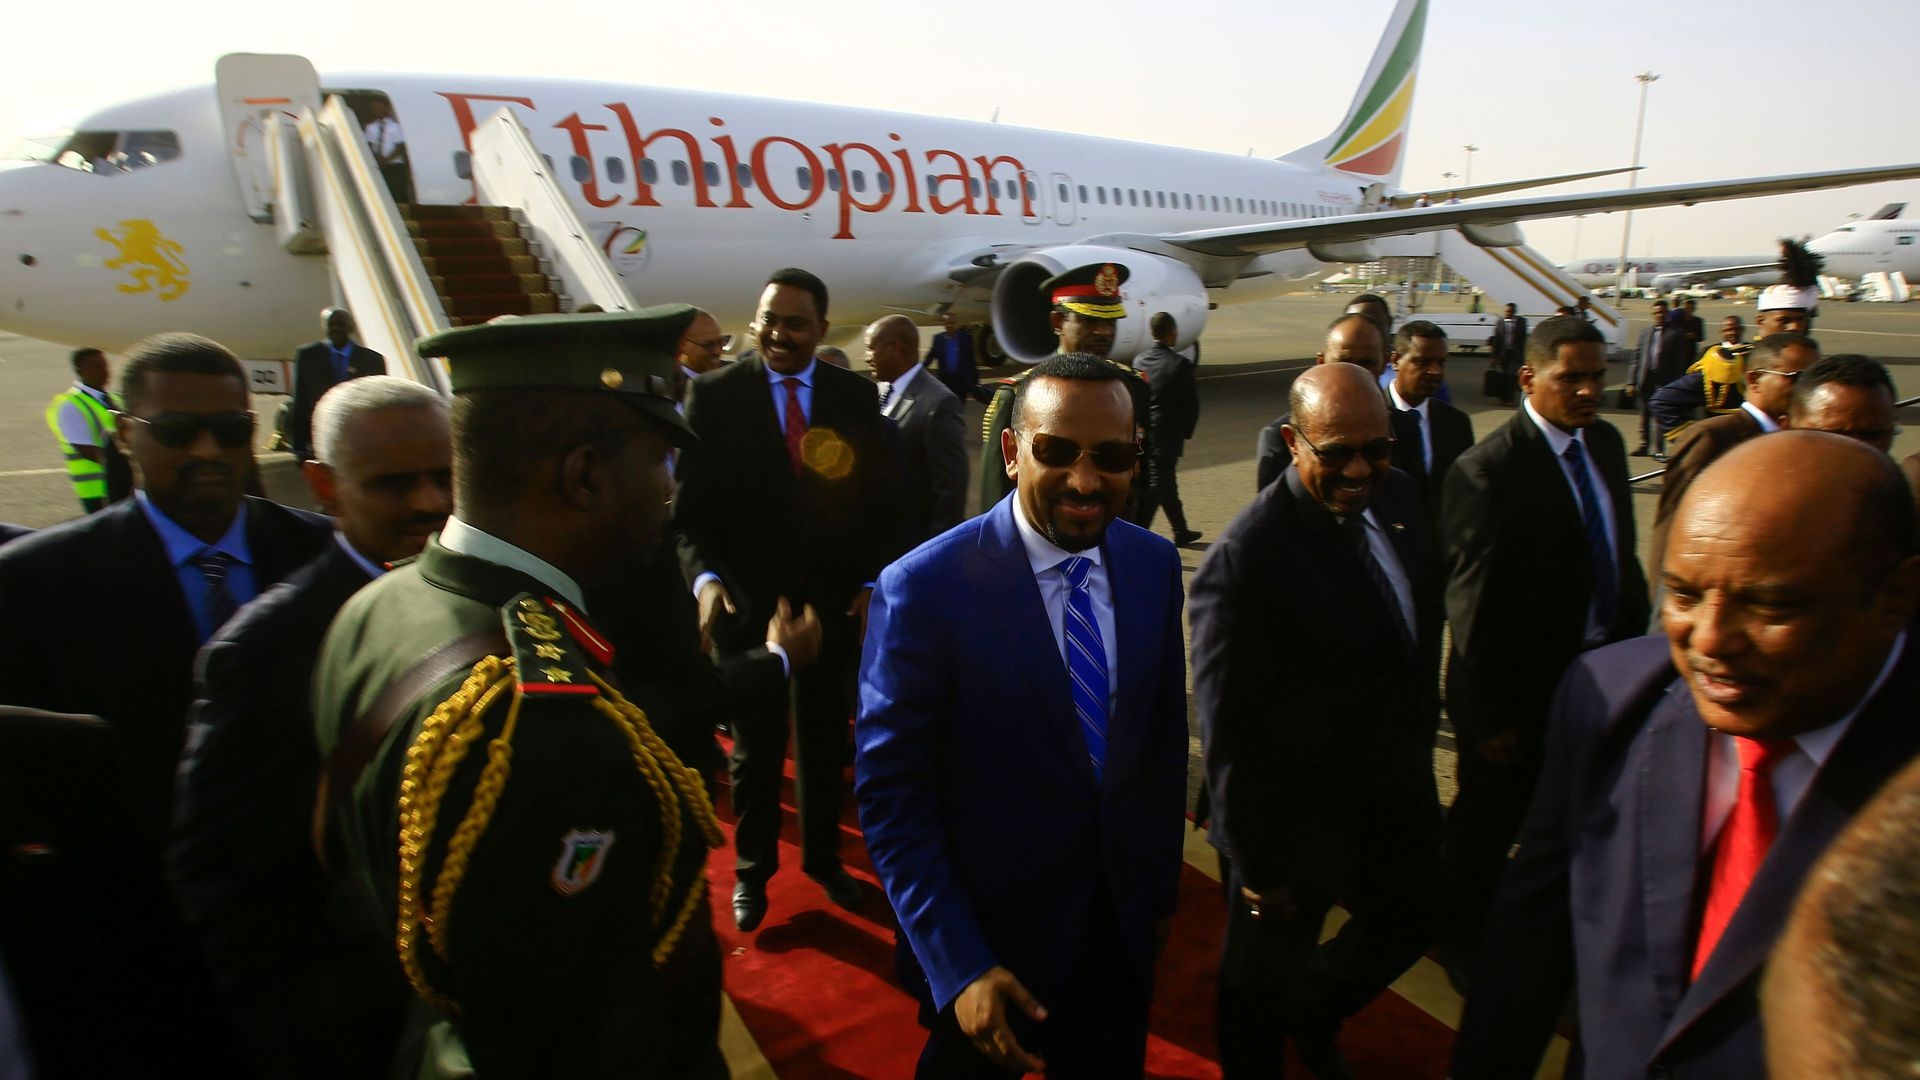 Ethiopian Prime Minister Abiy Ahmed is welcomed by Sudanese President Omar al-Bashir following his arrival in Khartoum for an official visit to Sudan on May 2, 2018.